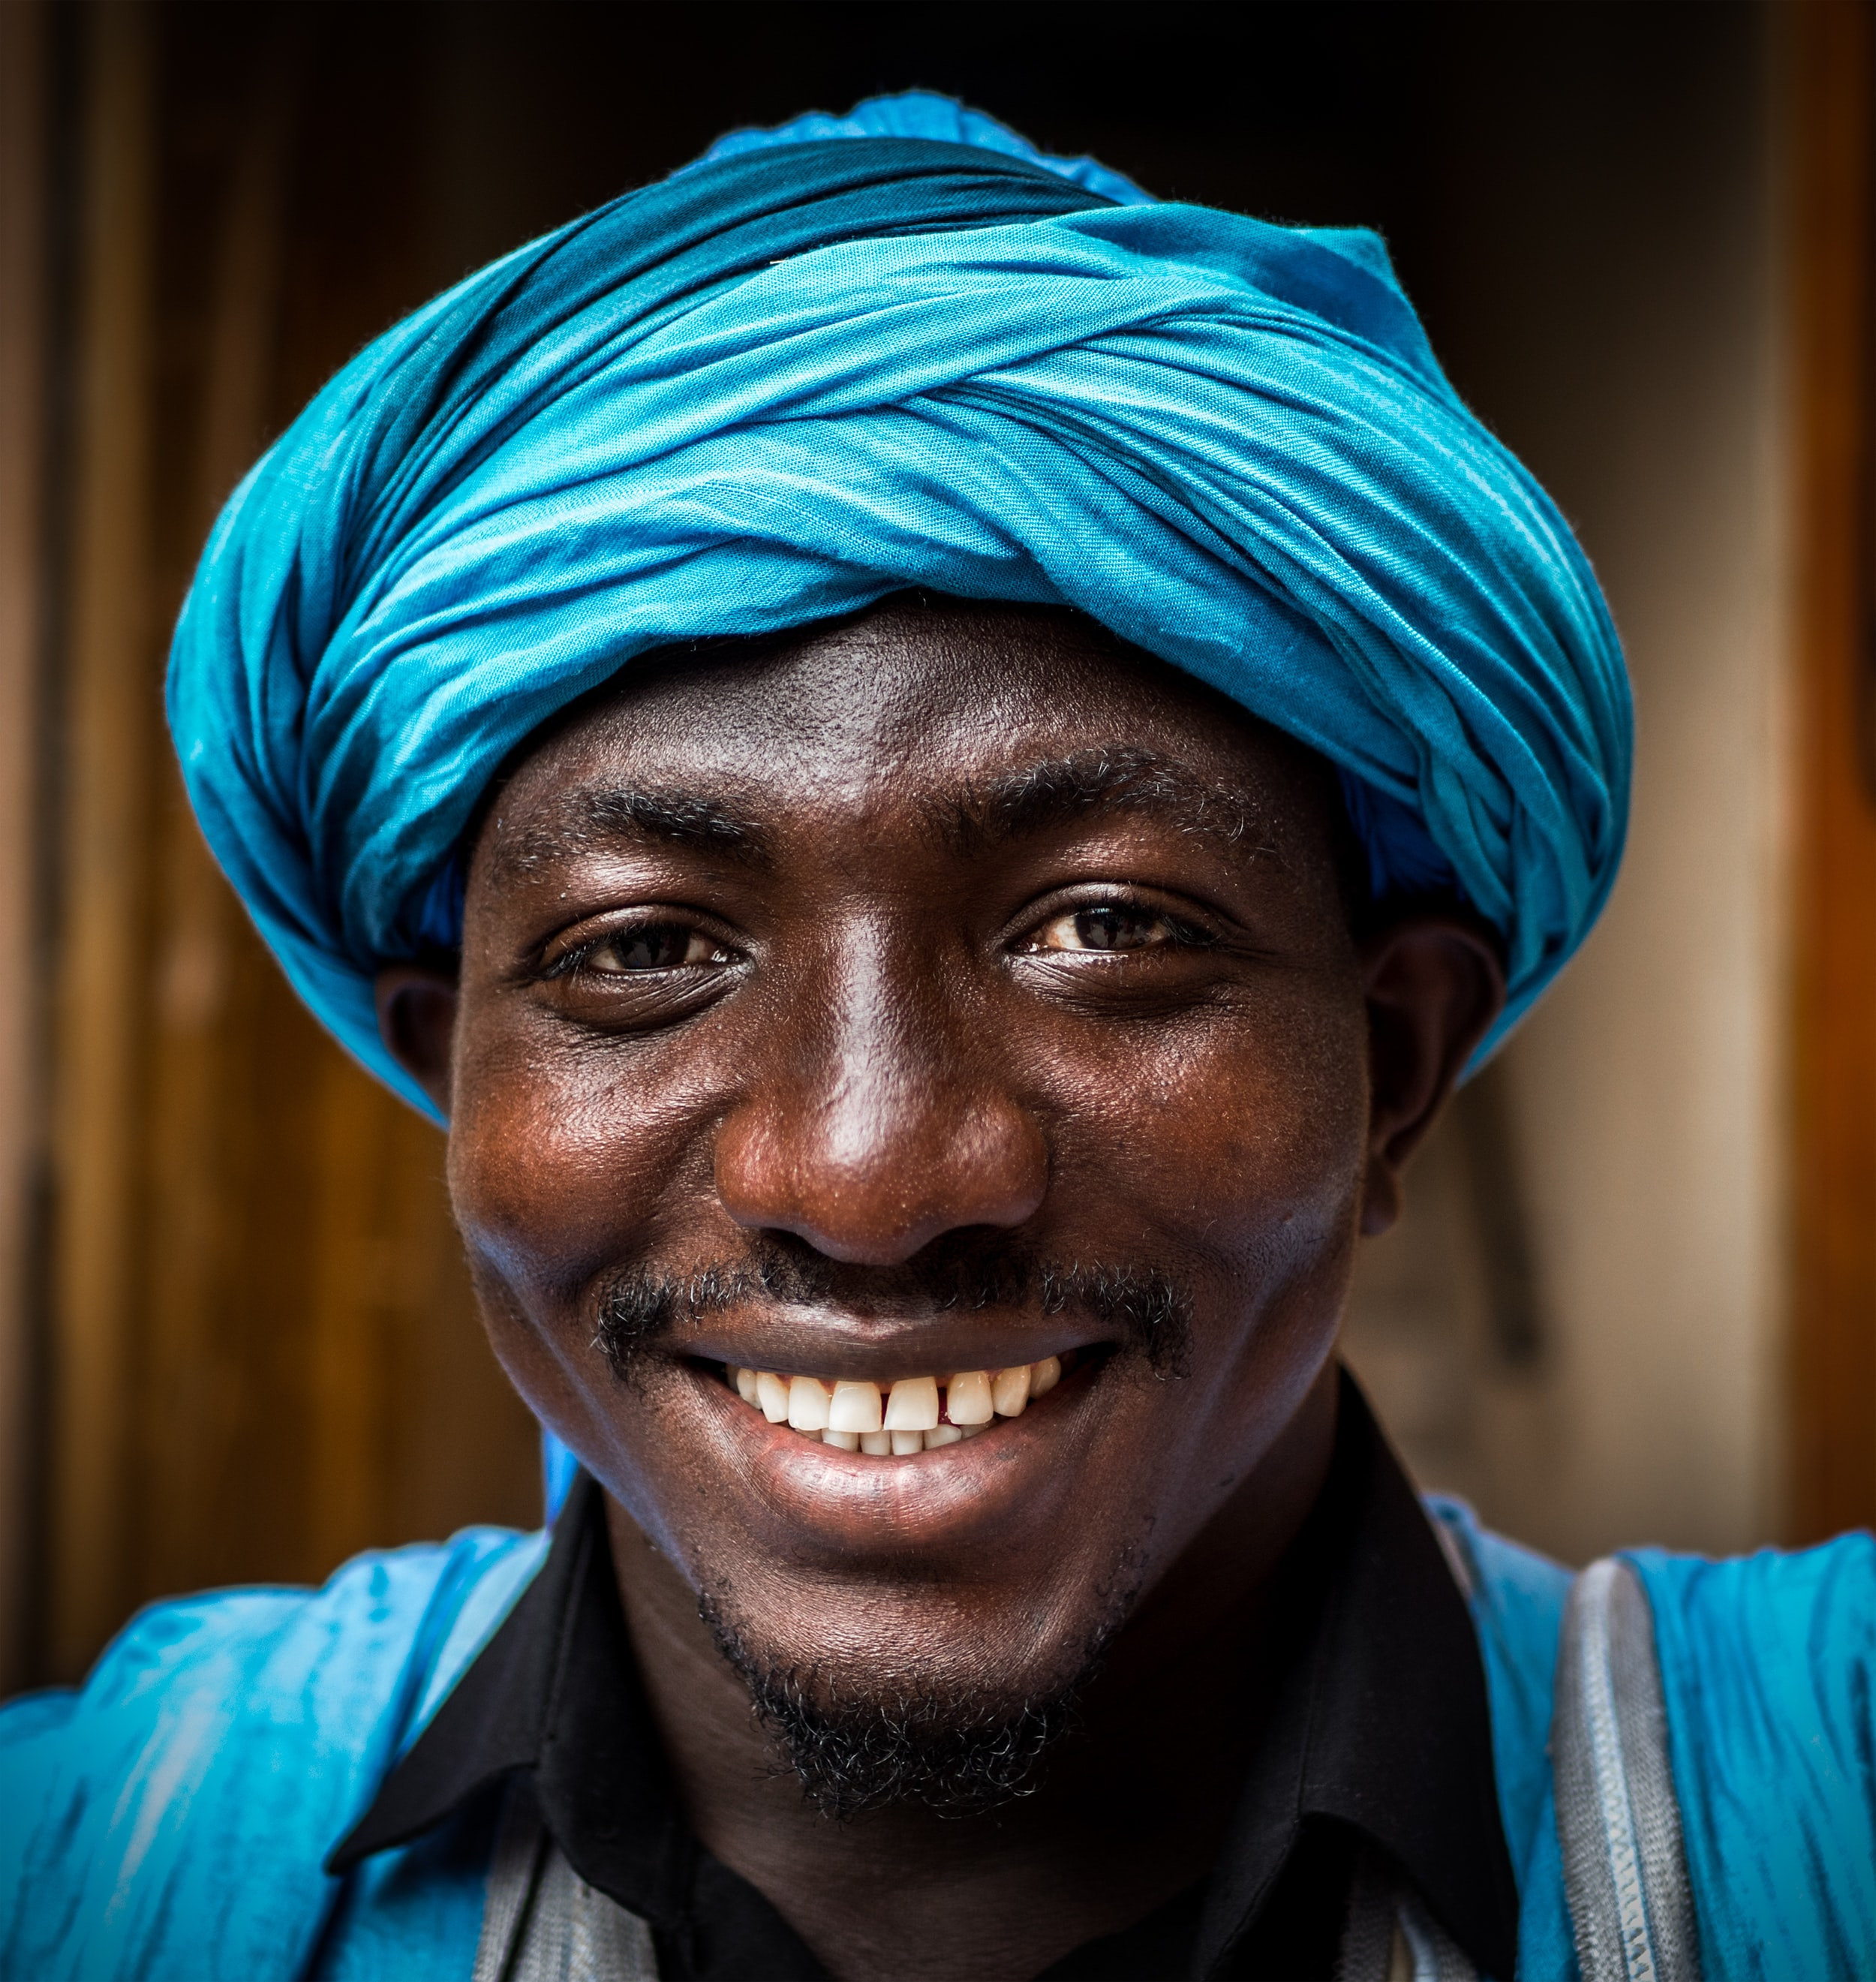 man wearing blue headdress